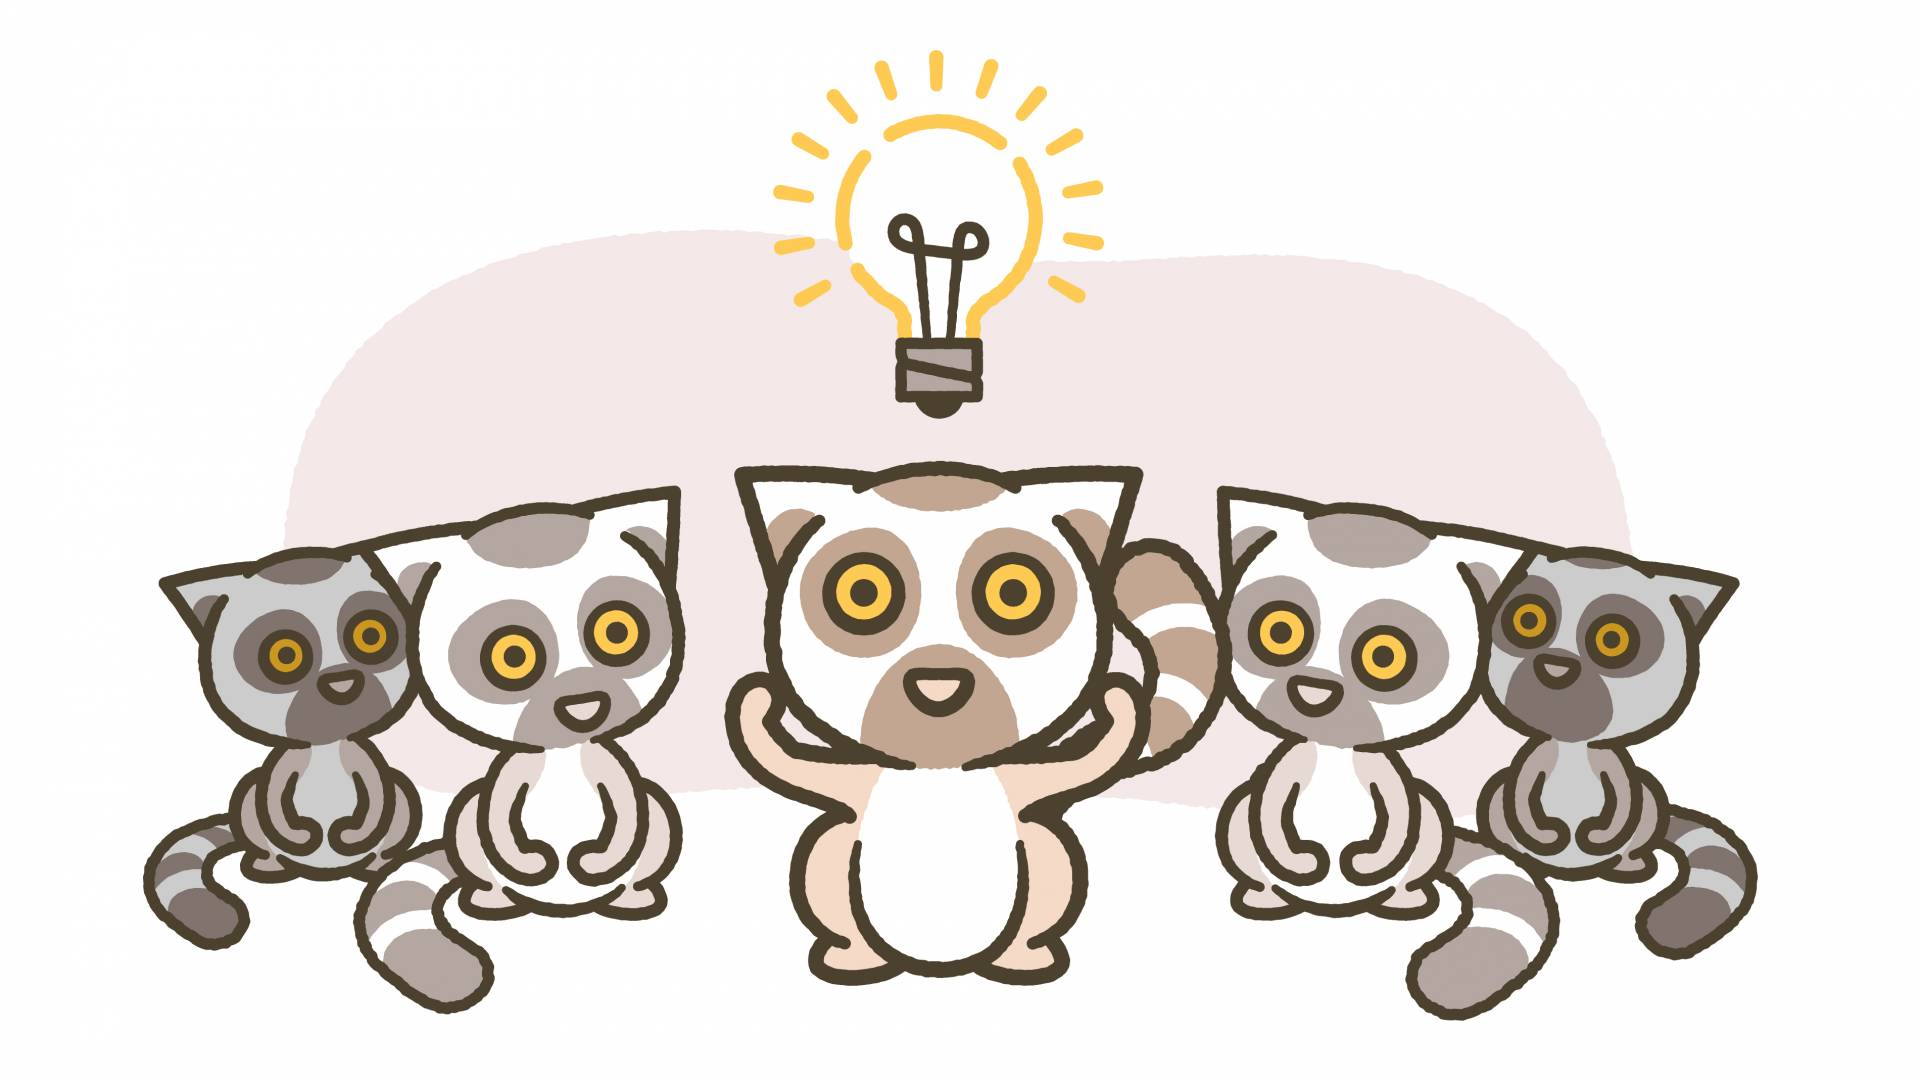 One lemur with a lightbulb over its head while other lemurs look on